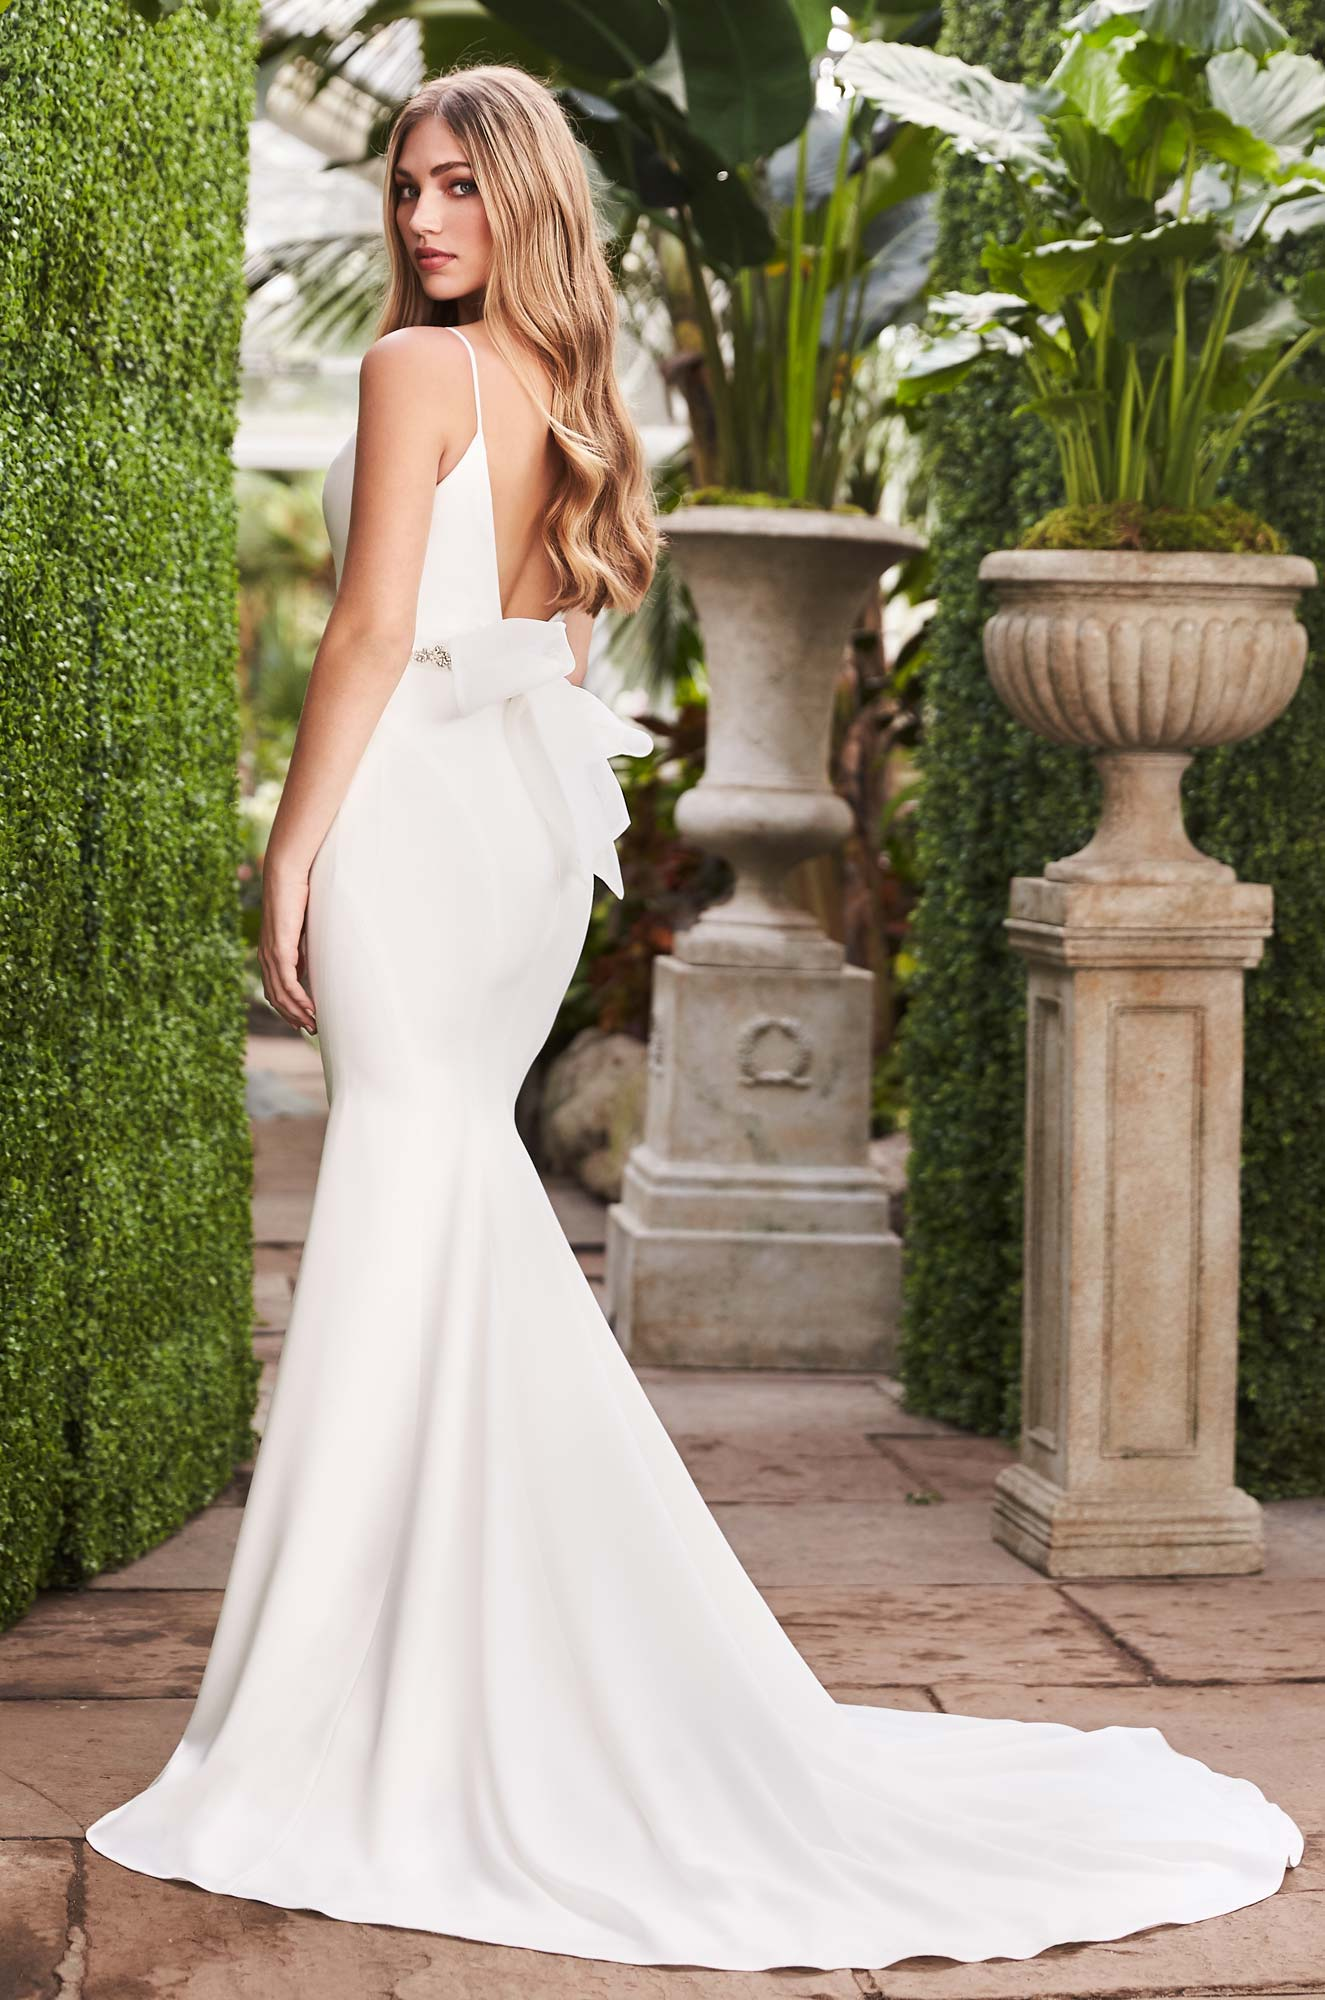 Sleek Crêpe Wedding Dress - Style #2261 | Mikaella Bridal